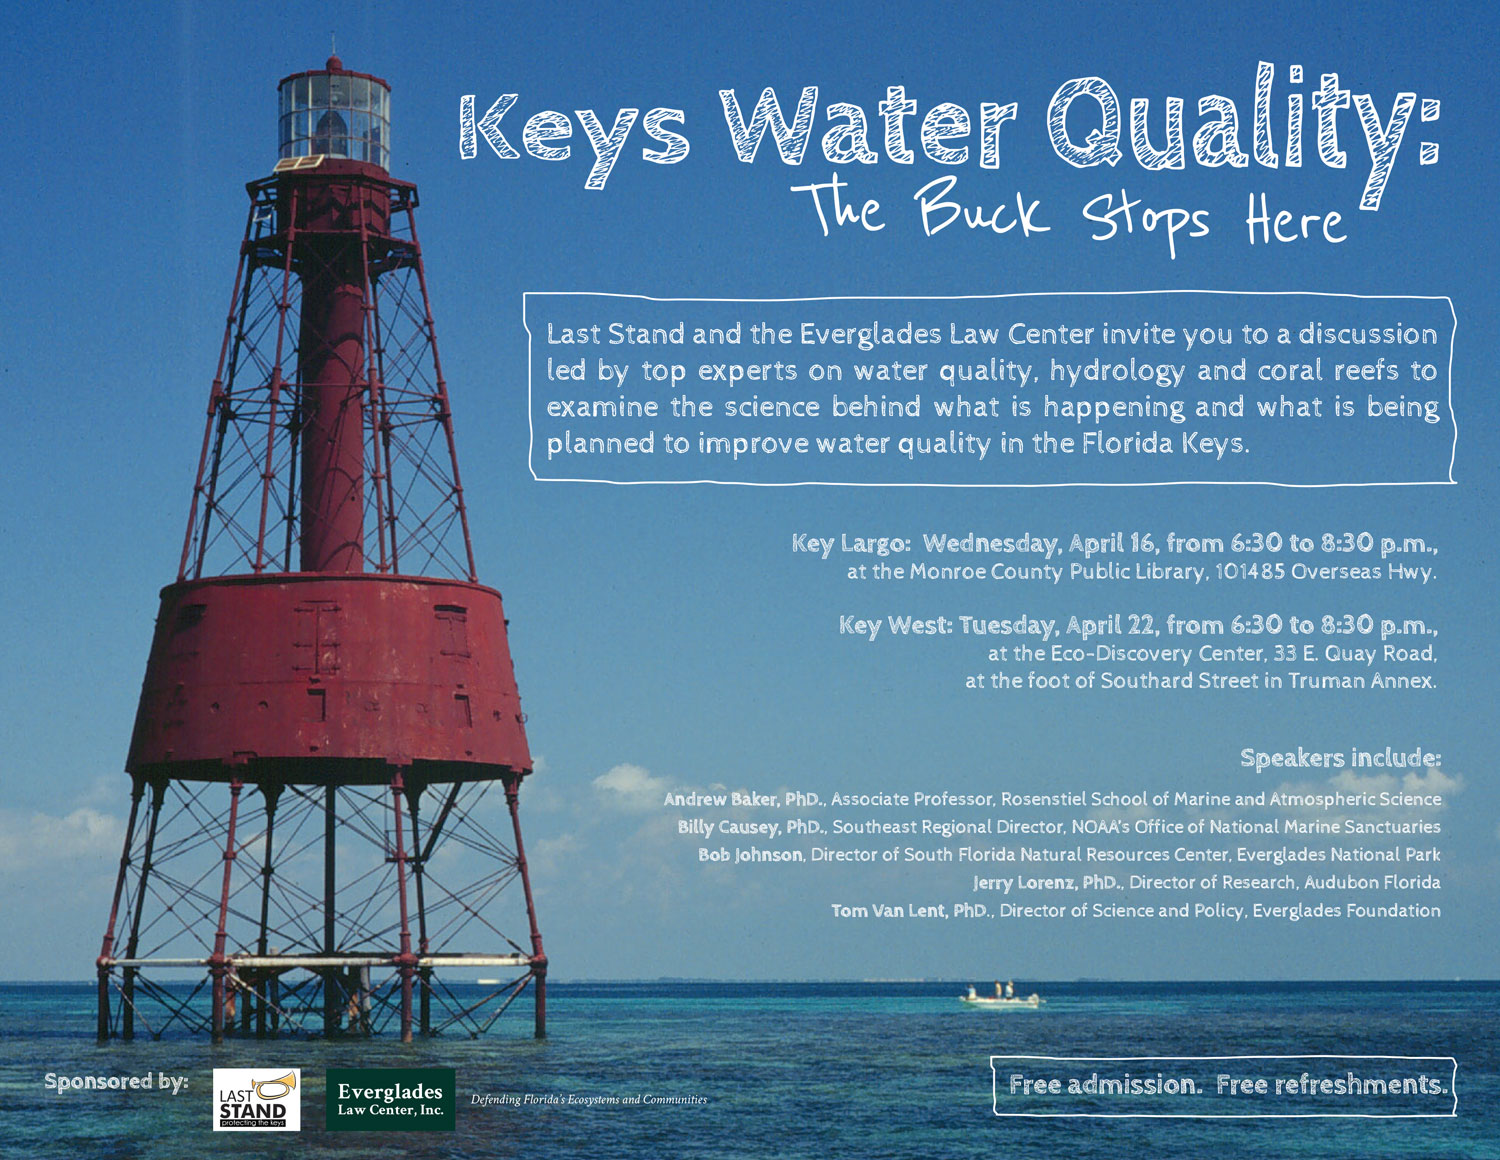 KEYS WATER QUALITY:  The Buck Stops Here